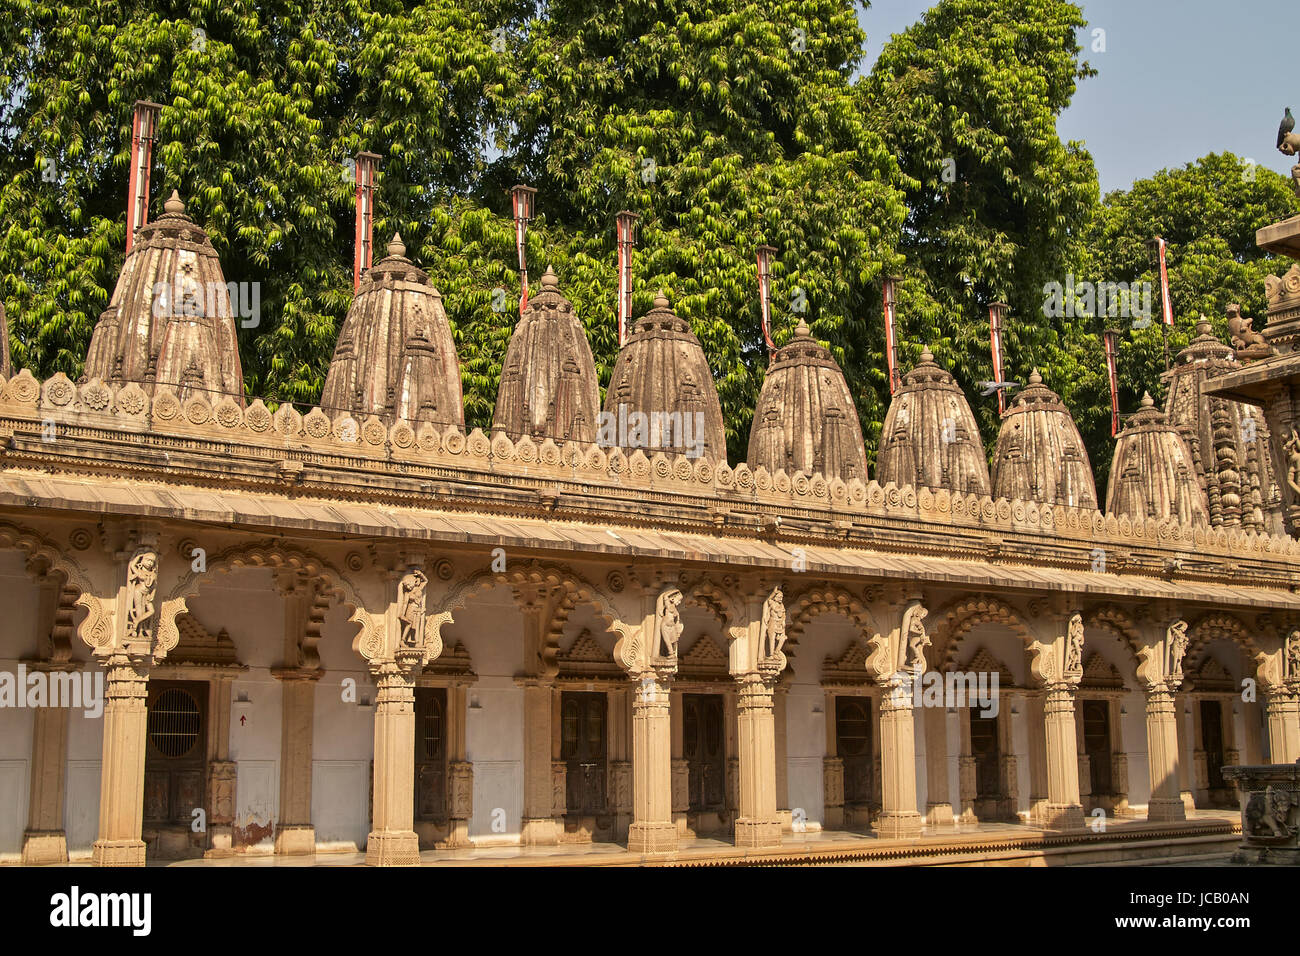 Ornately carved stonework of a colonnade surrounding the courtyard of the Hutheesing Temple in Ahmedabad, Gujarat, - Stock Image